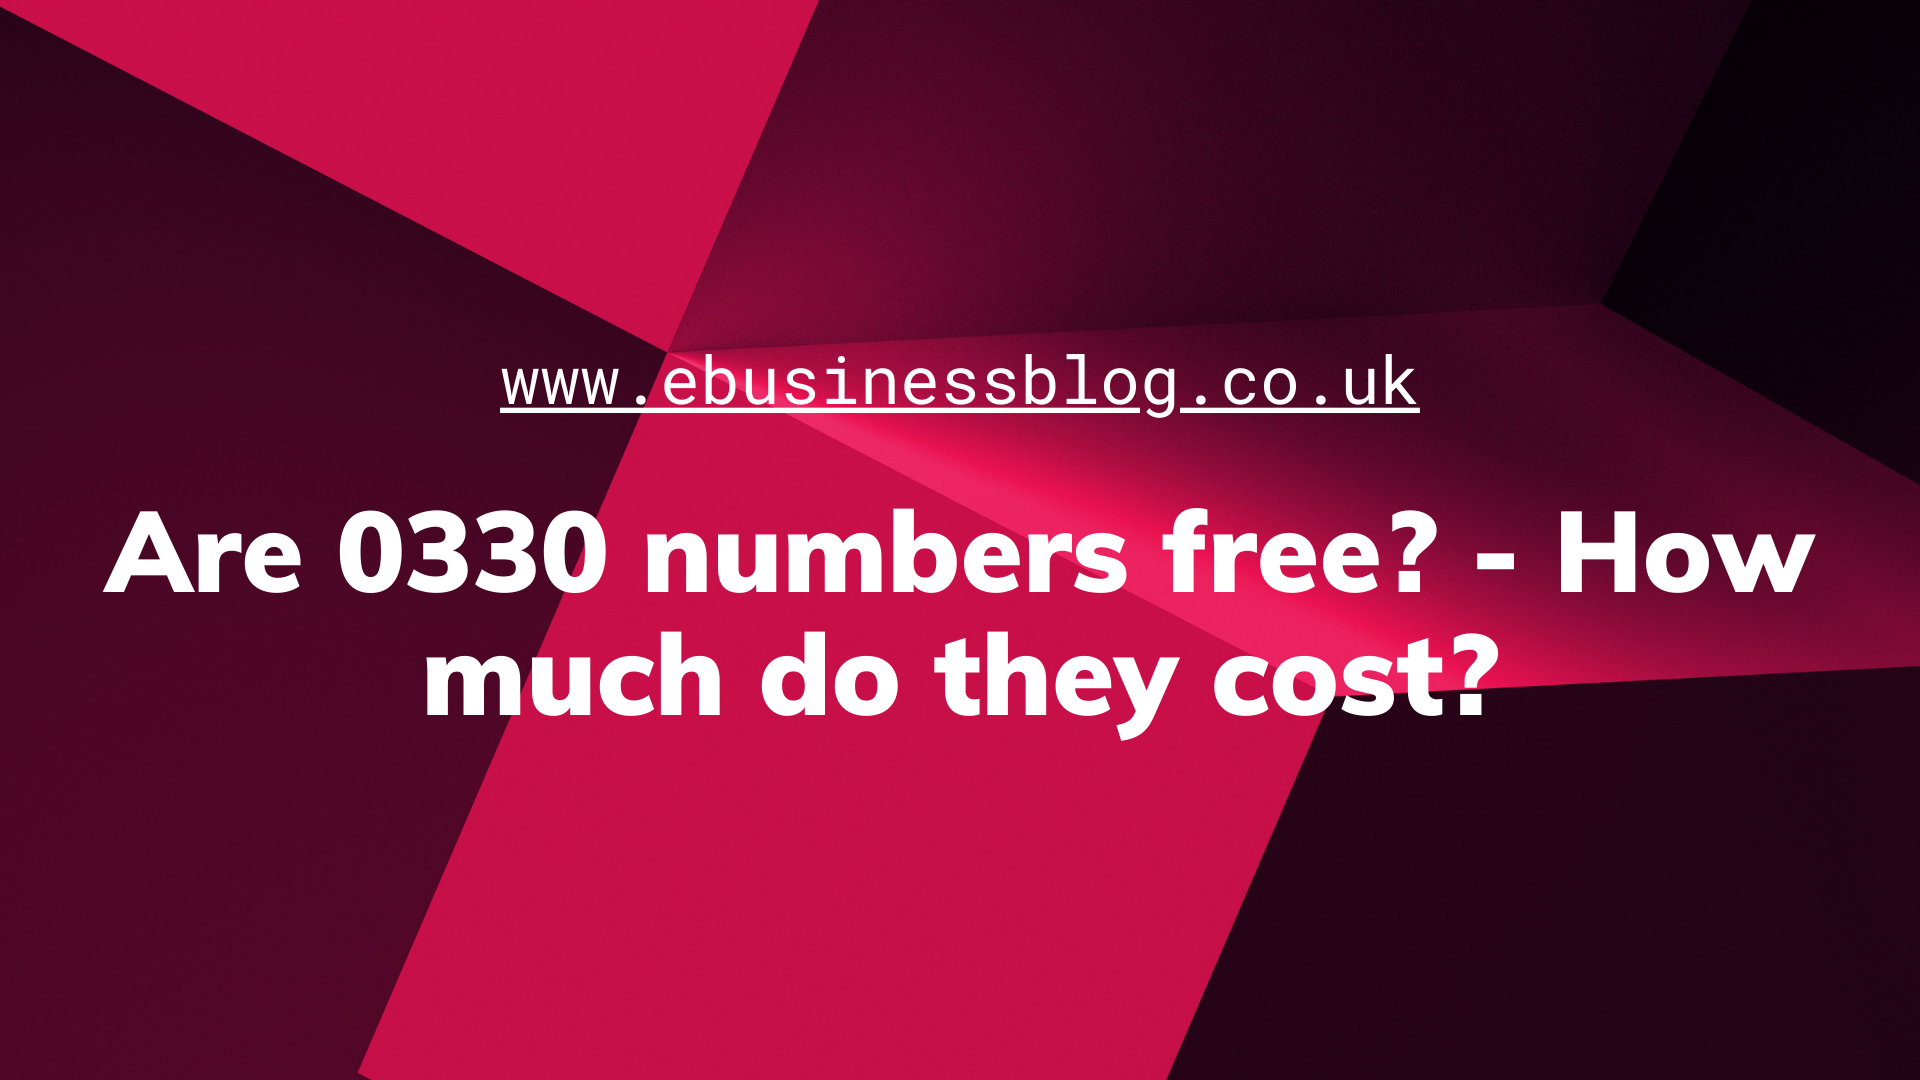 are 0330 numbers free for businesses in UK